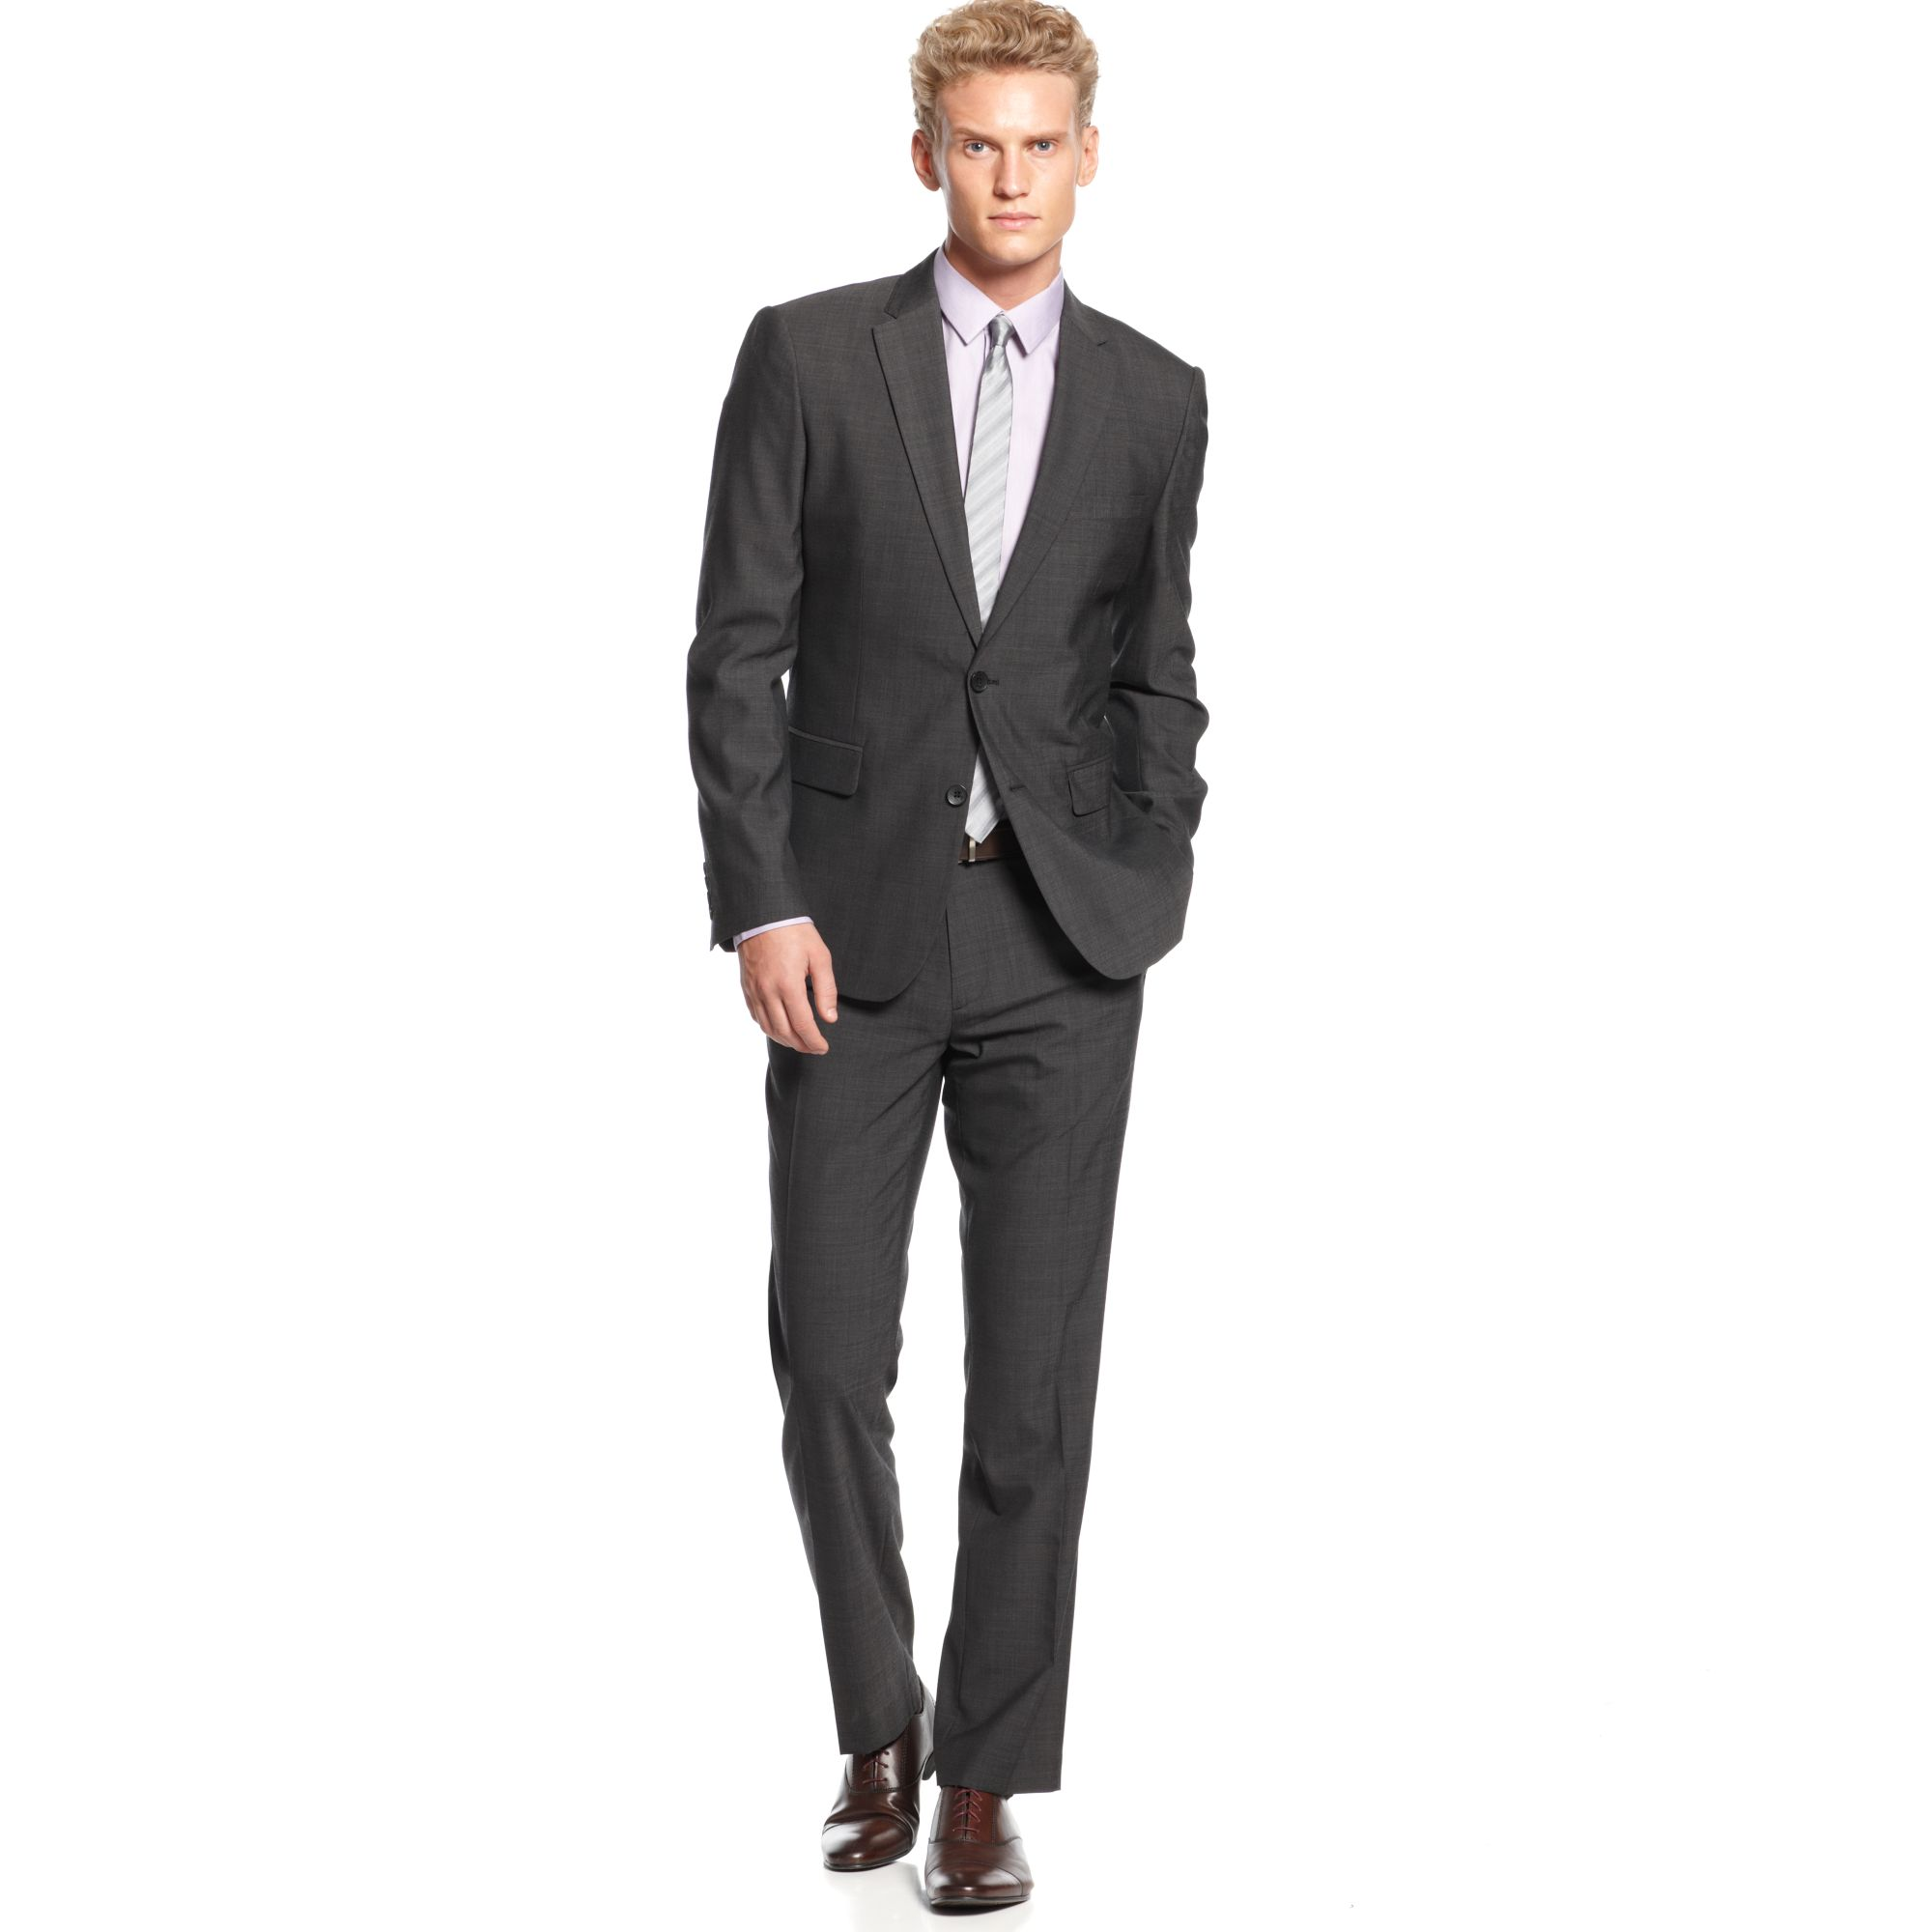 Slim Fit Charcoal Suit Dress Yy